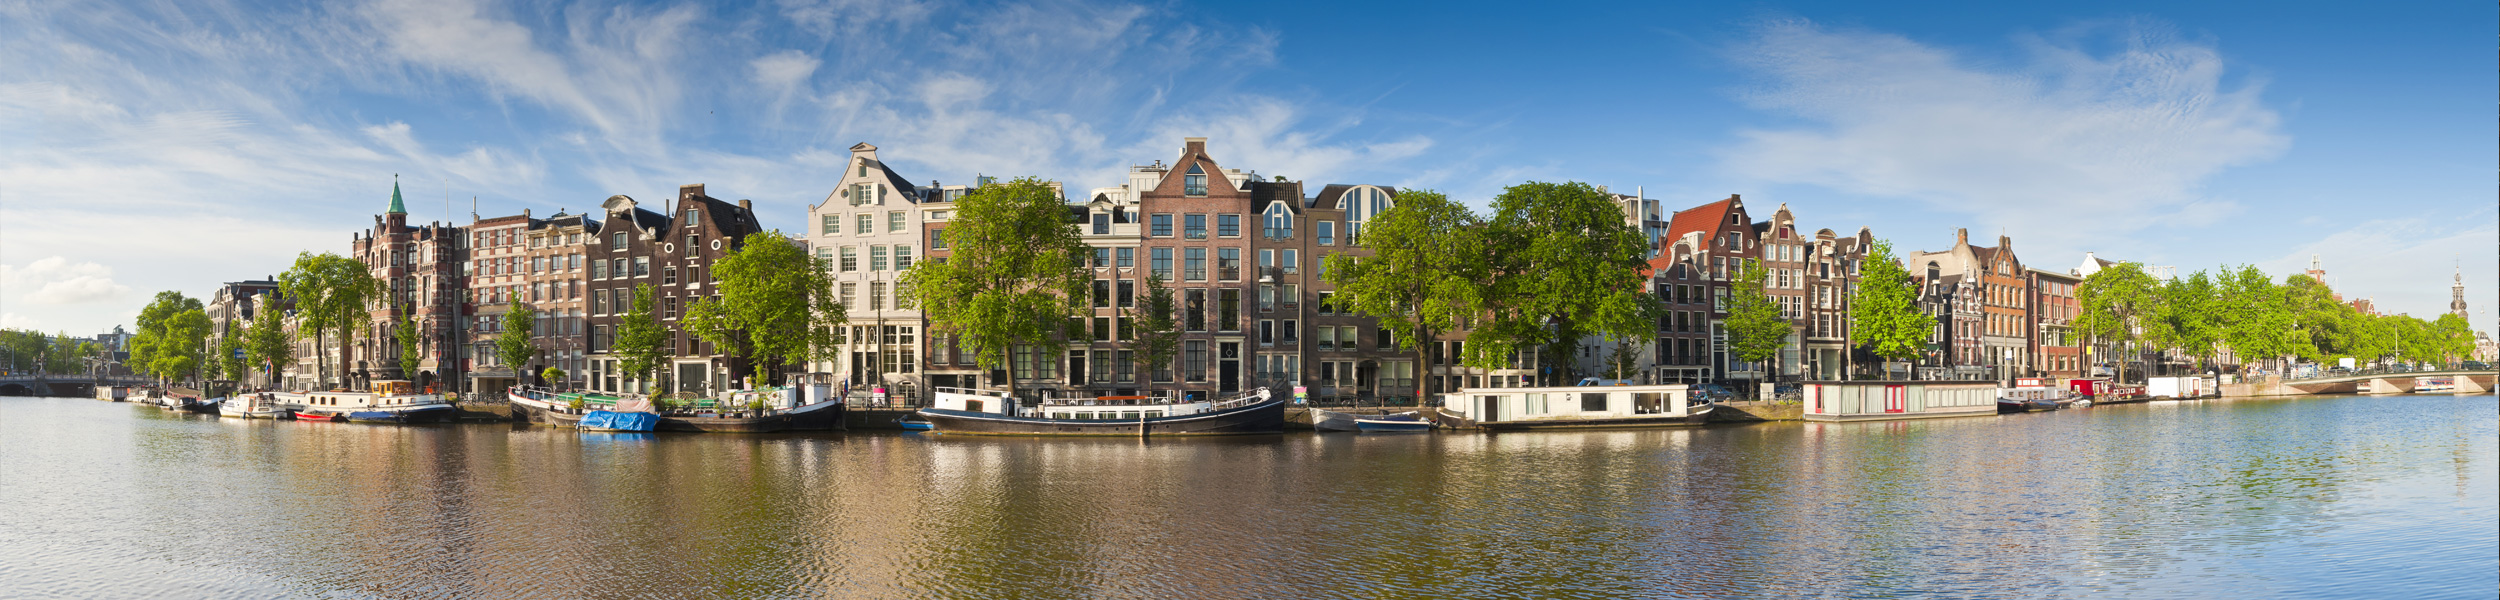 ASP.NET Web Developer Amsterdam area, the Netherlands